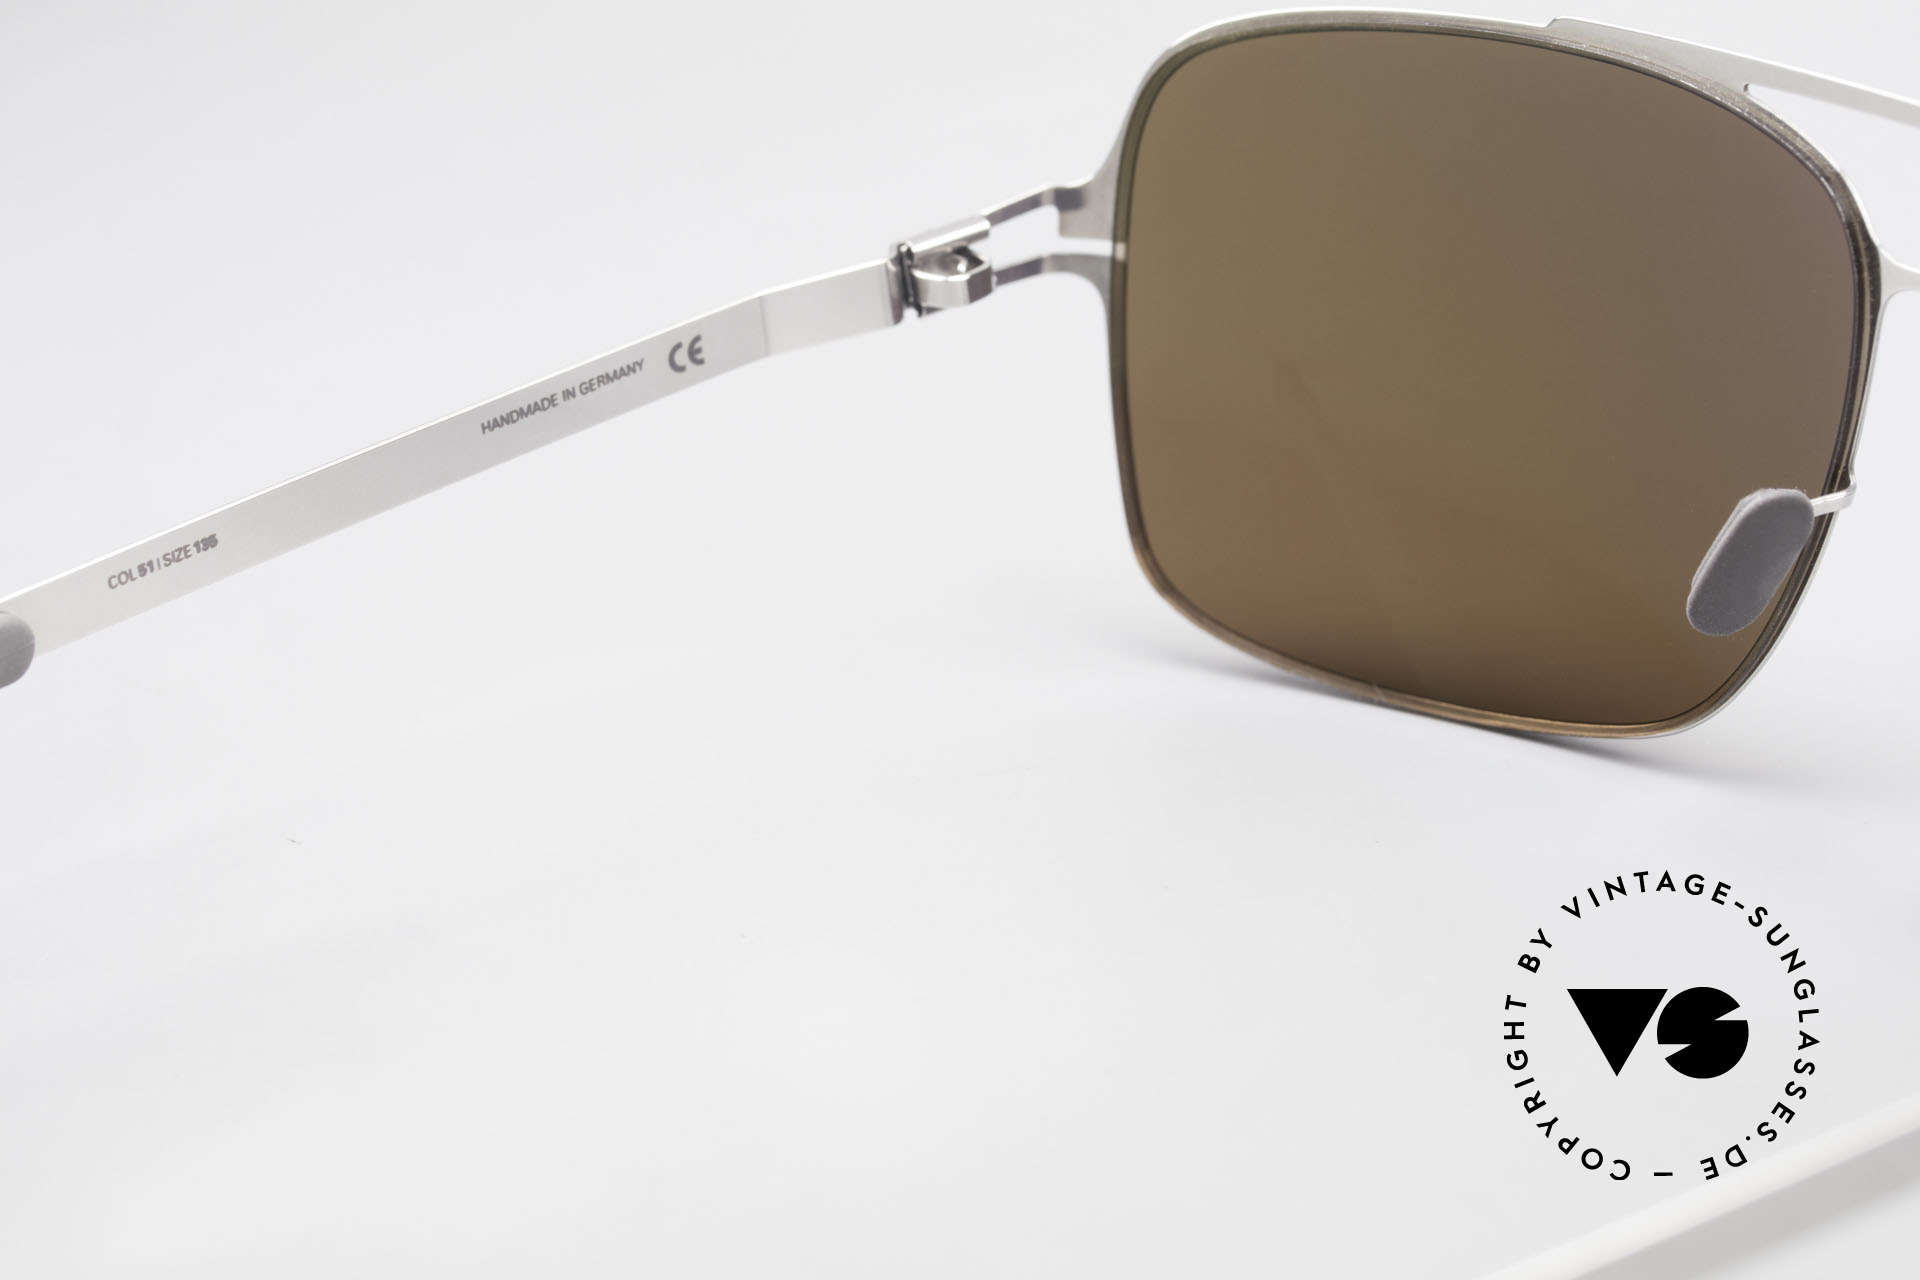 Mykita Troy Collection No 1 Mykita Shades, worn by many celebs (rare & in high demand, meanwhile), Made for Men